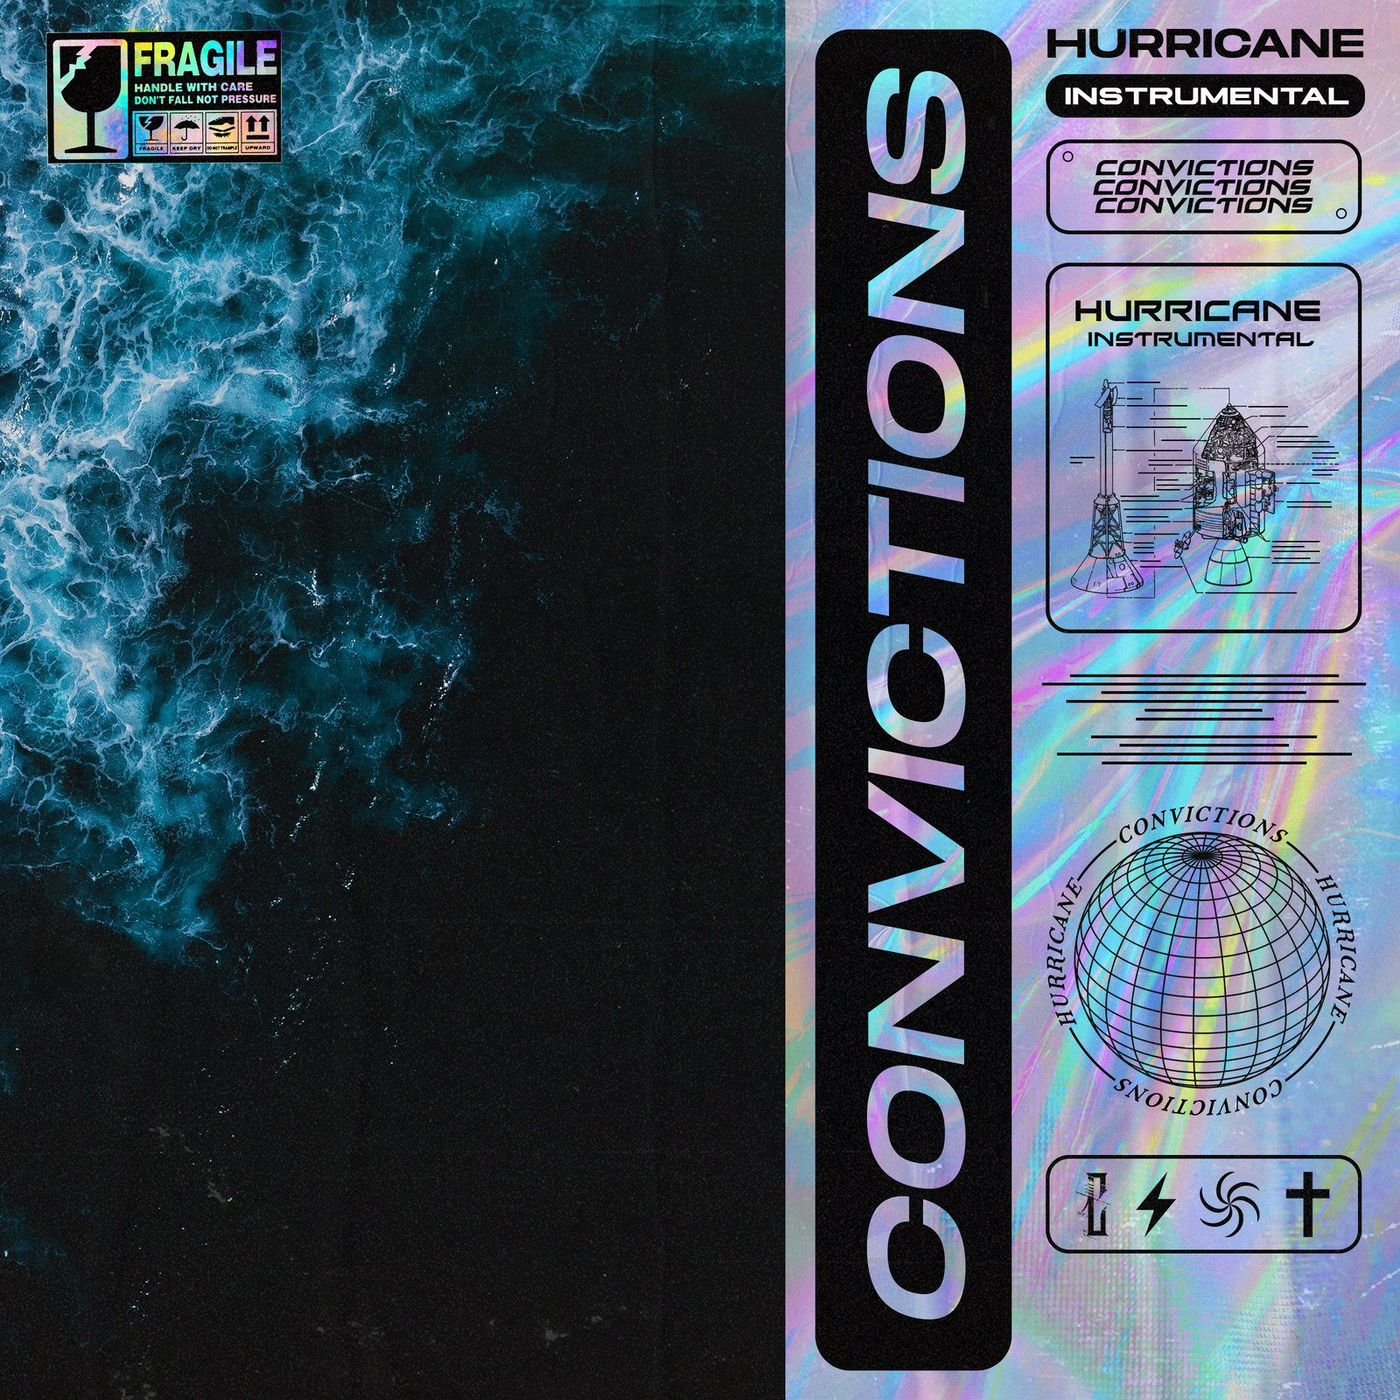 Convictions - Hurricane (Instrumental) [single] (2020)